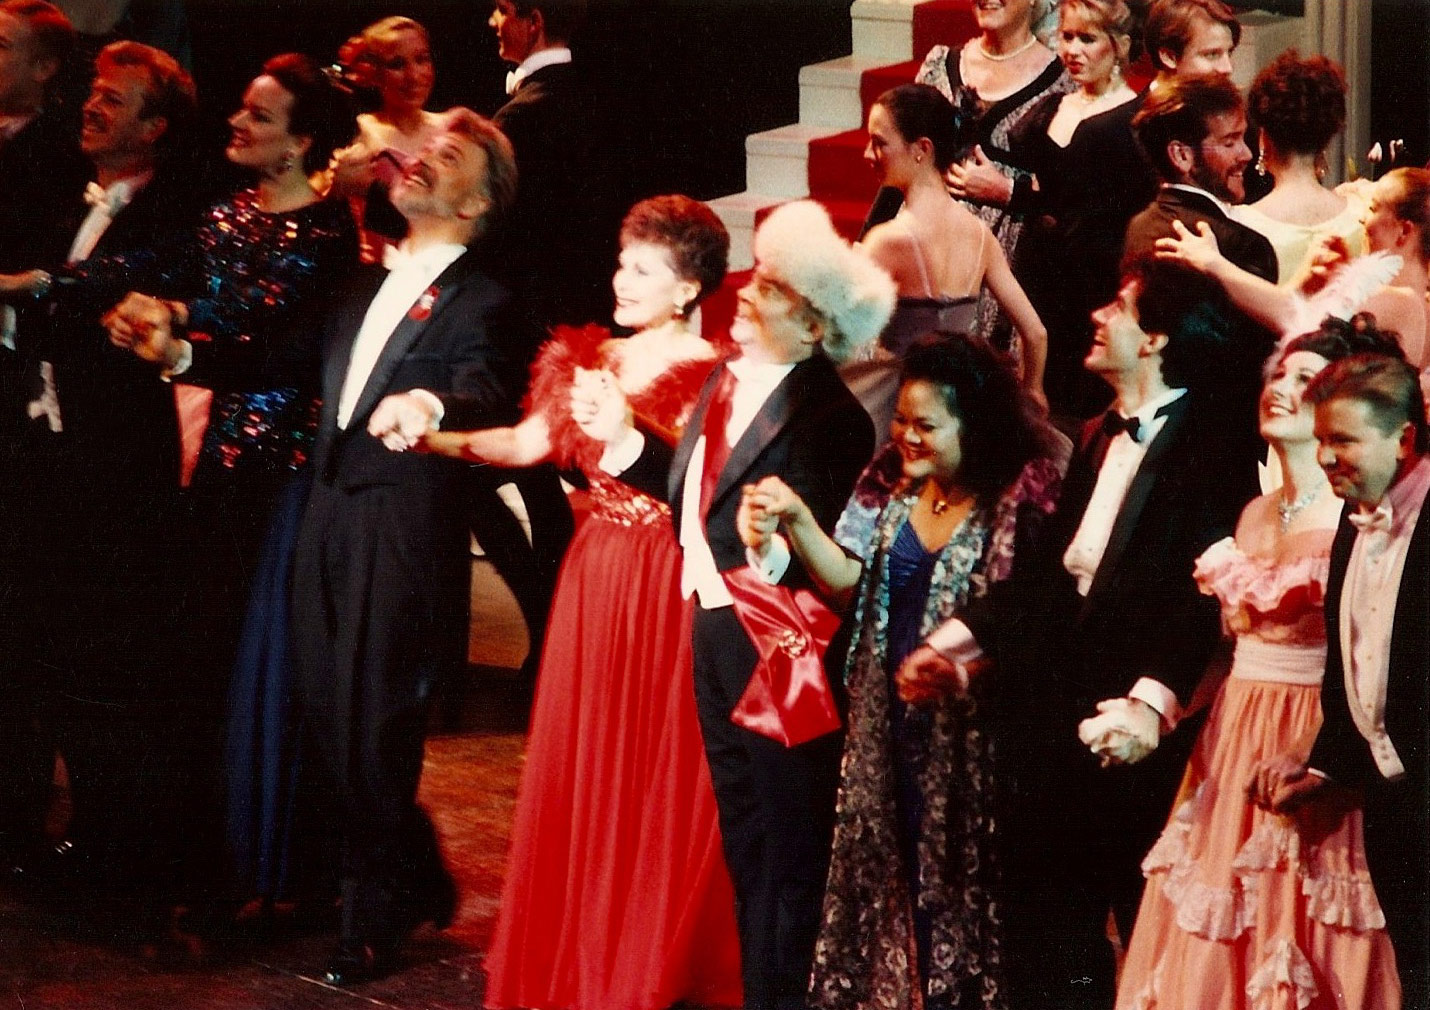 Far right at  Die Fledermaus  Act II Gala curtain call, with fellow partygoers including Jane Ohmes, Gary Aldrich, Roberta Peters, James Billings, Lani Misenas, Robert Sopolsky and Jane Munson-Berg. Springfield Regional Opera, Missouri.